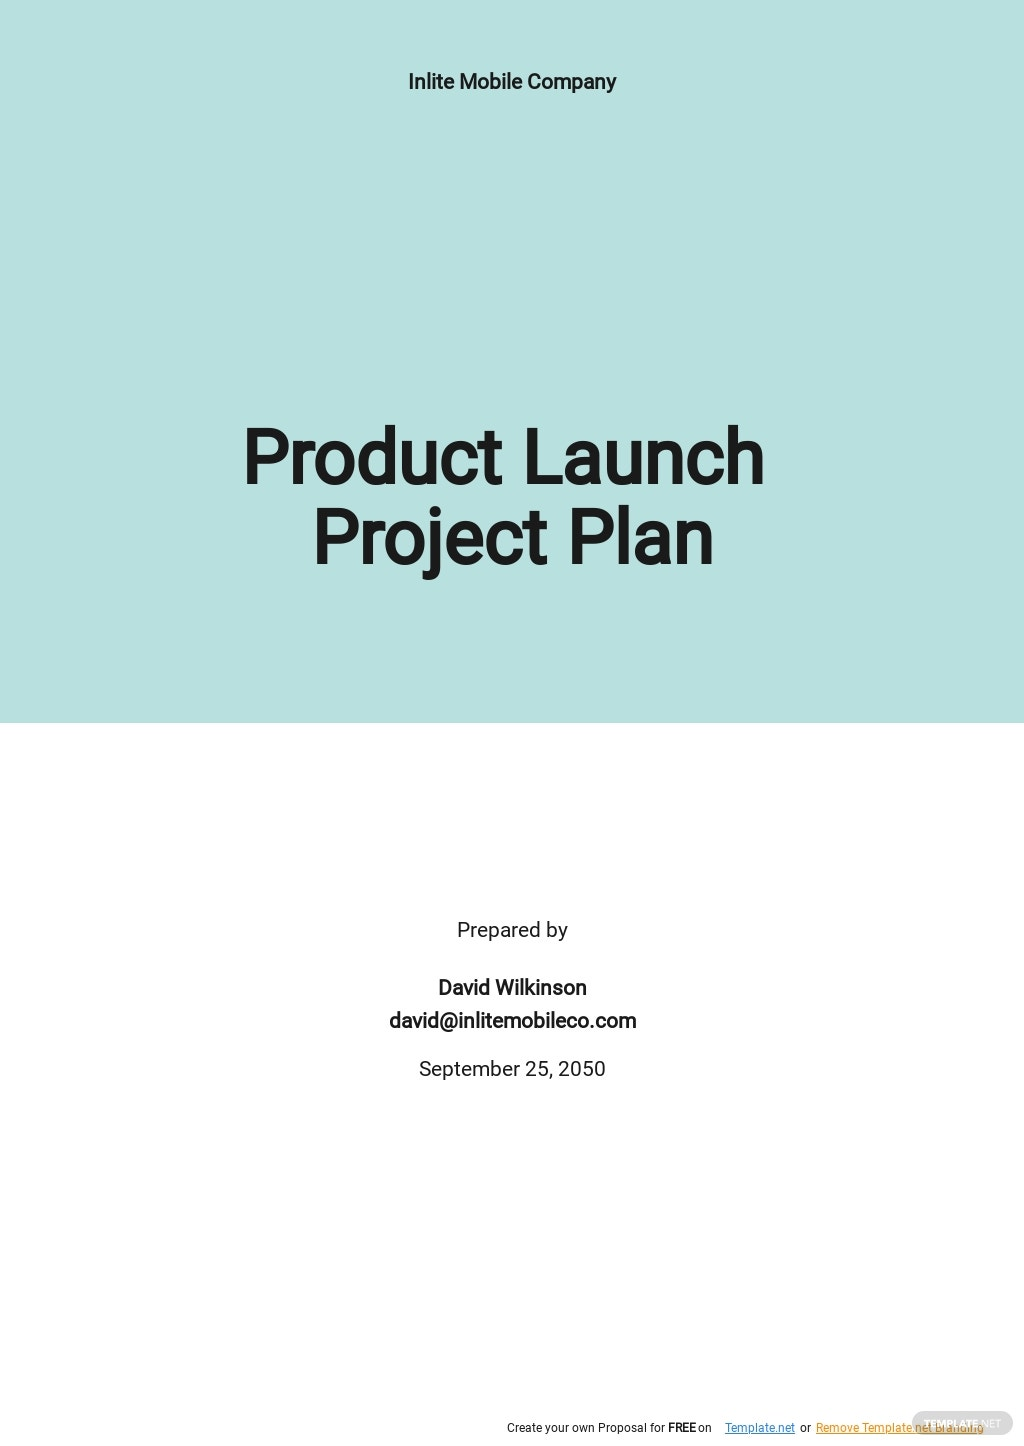 Product Launch Project Plan Template.jpe